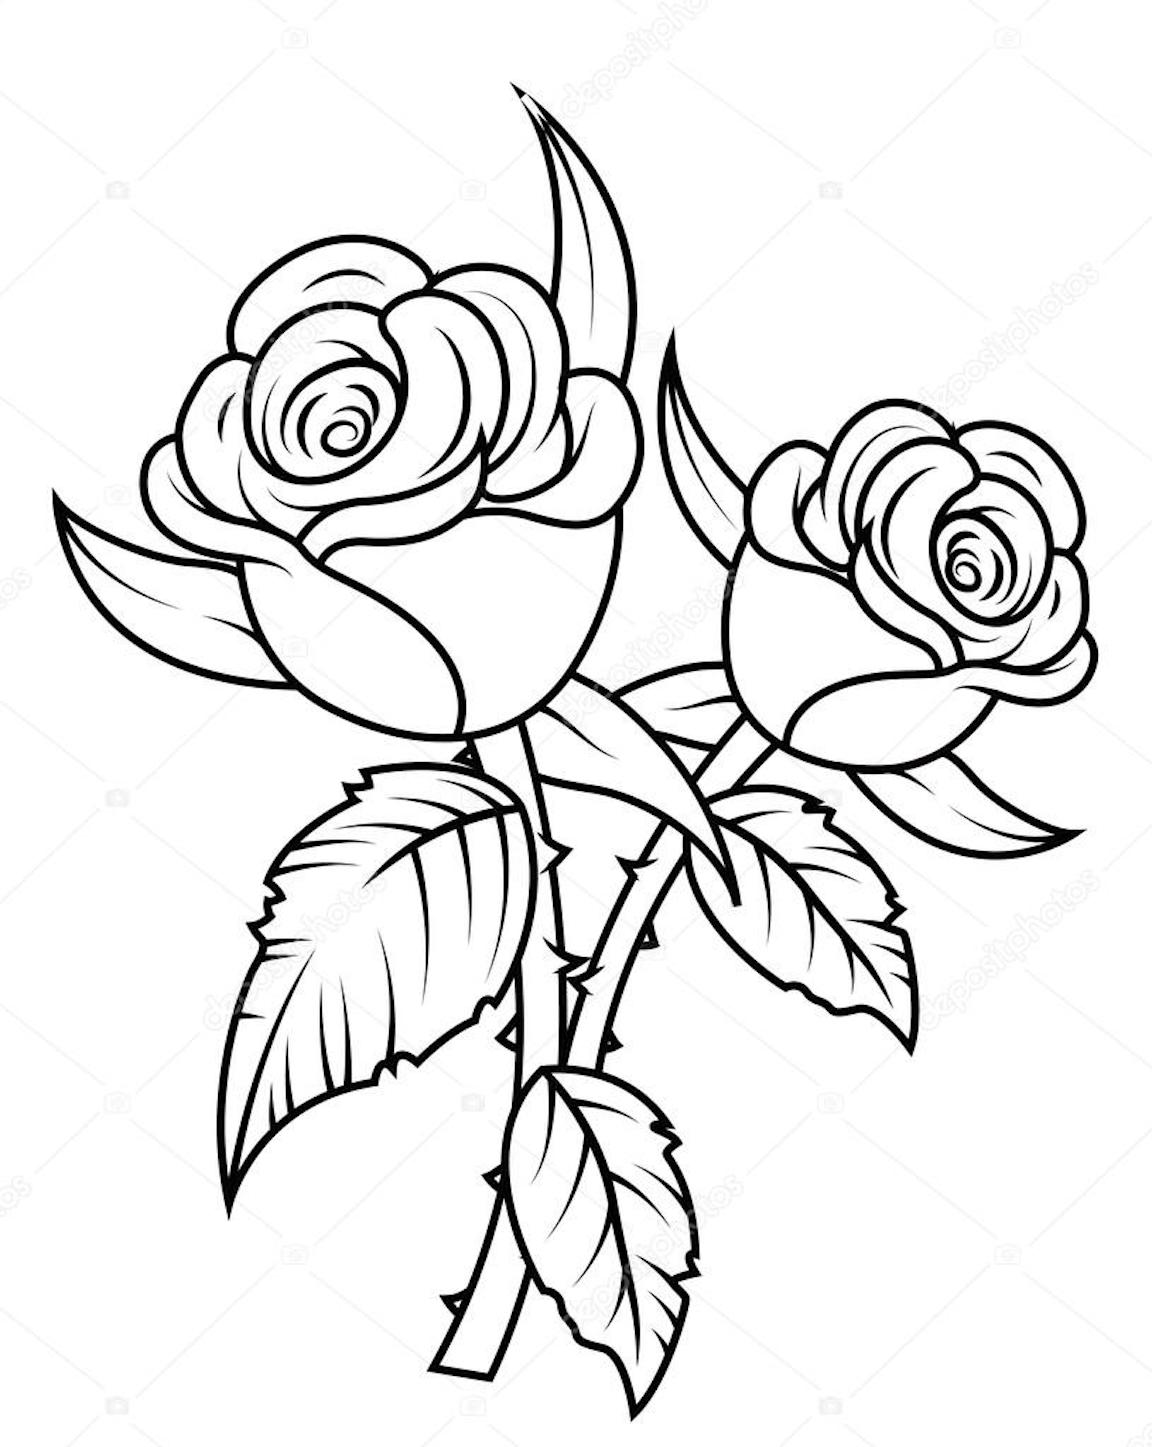 coloring picture rose rose clipart coloring pages and many more free printable picture coloring rose